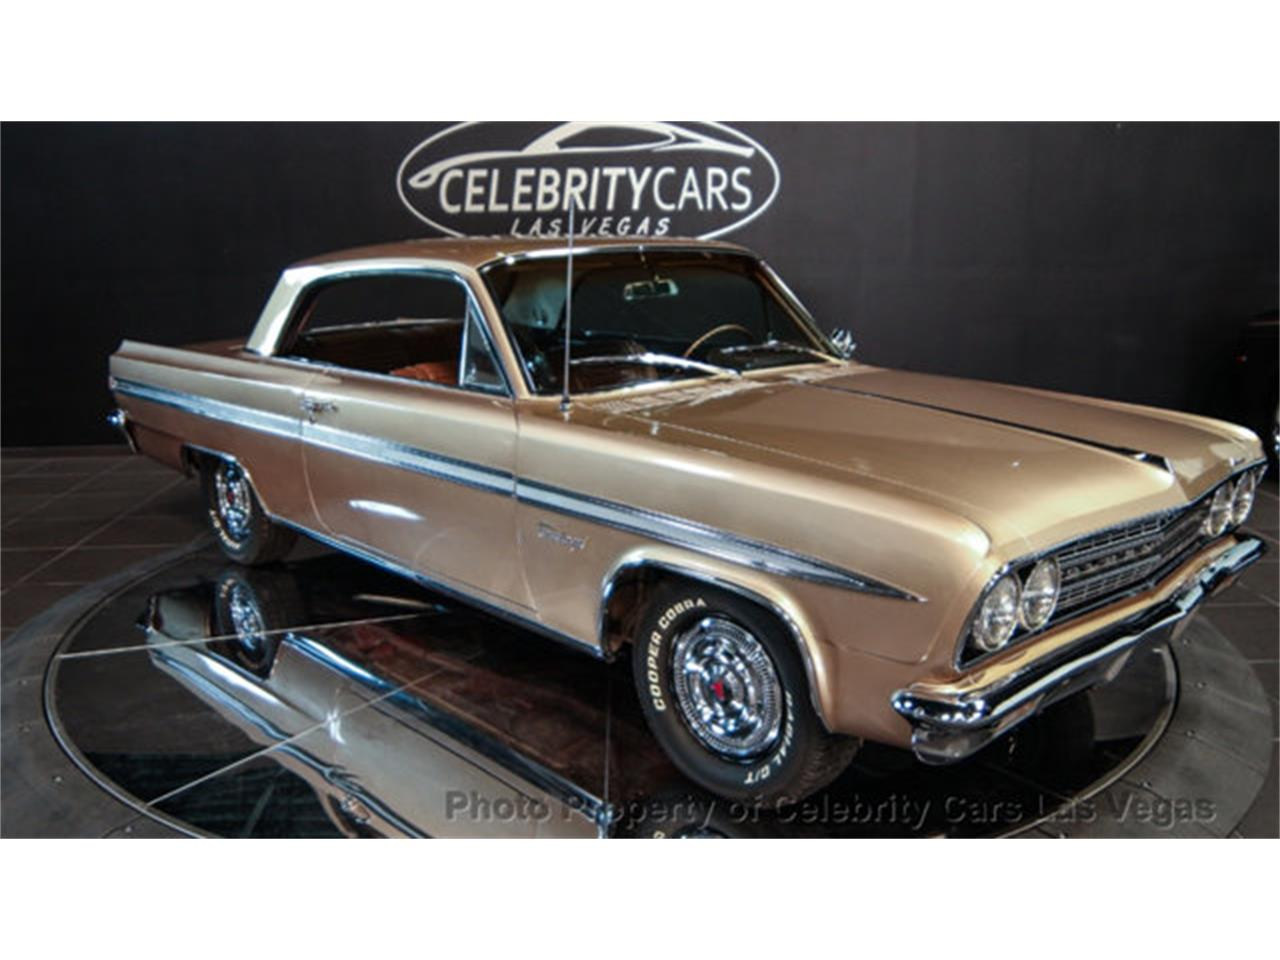 Large Picture of Classic '63 Oldsmobile Jet fire Turbocharged located in Las Vegas Nevada - $61,500.00 Offered by Celebrity Cars Las Vegas - J98V